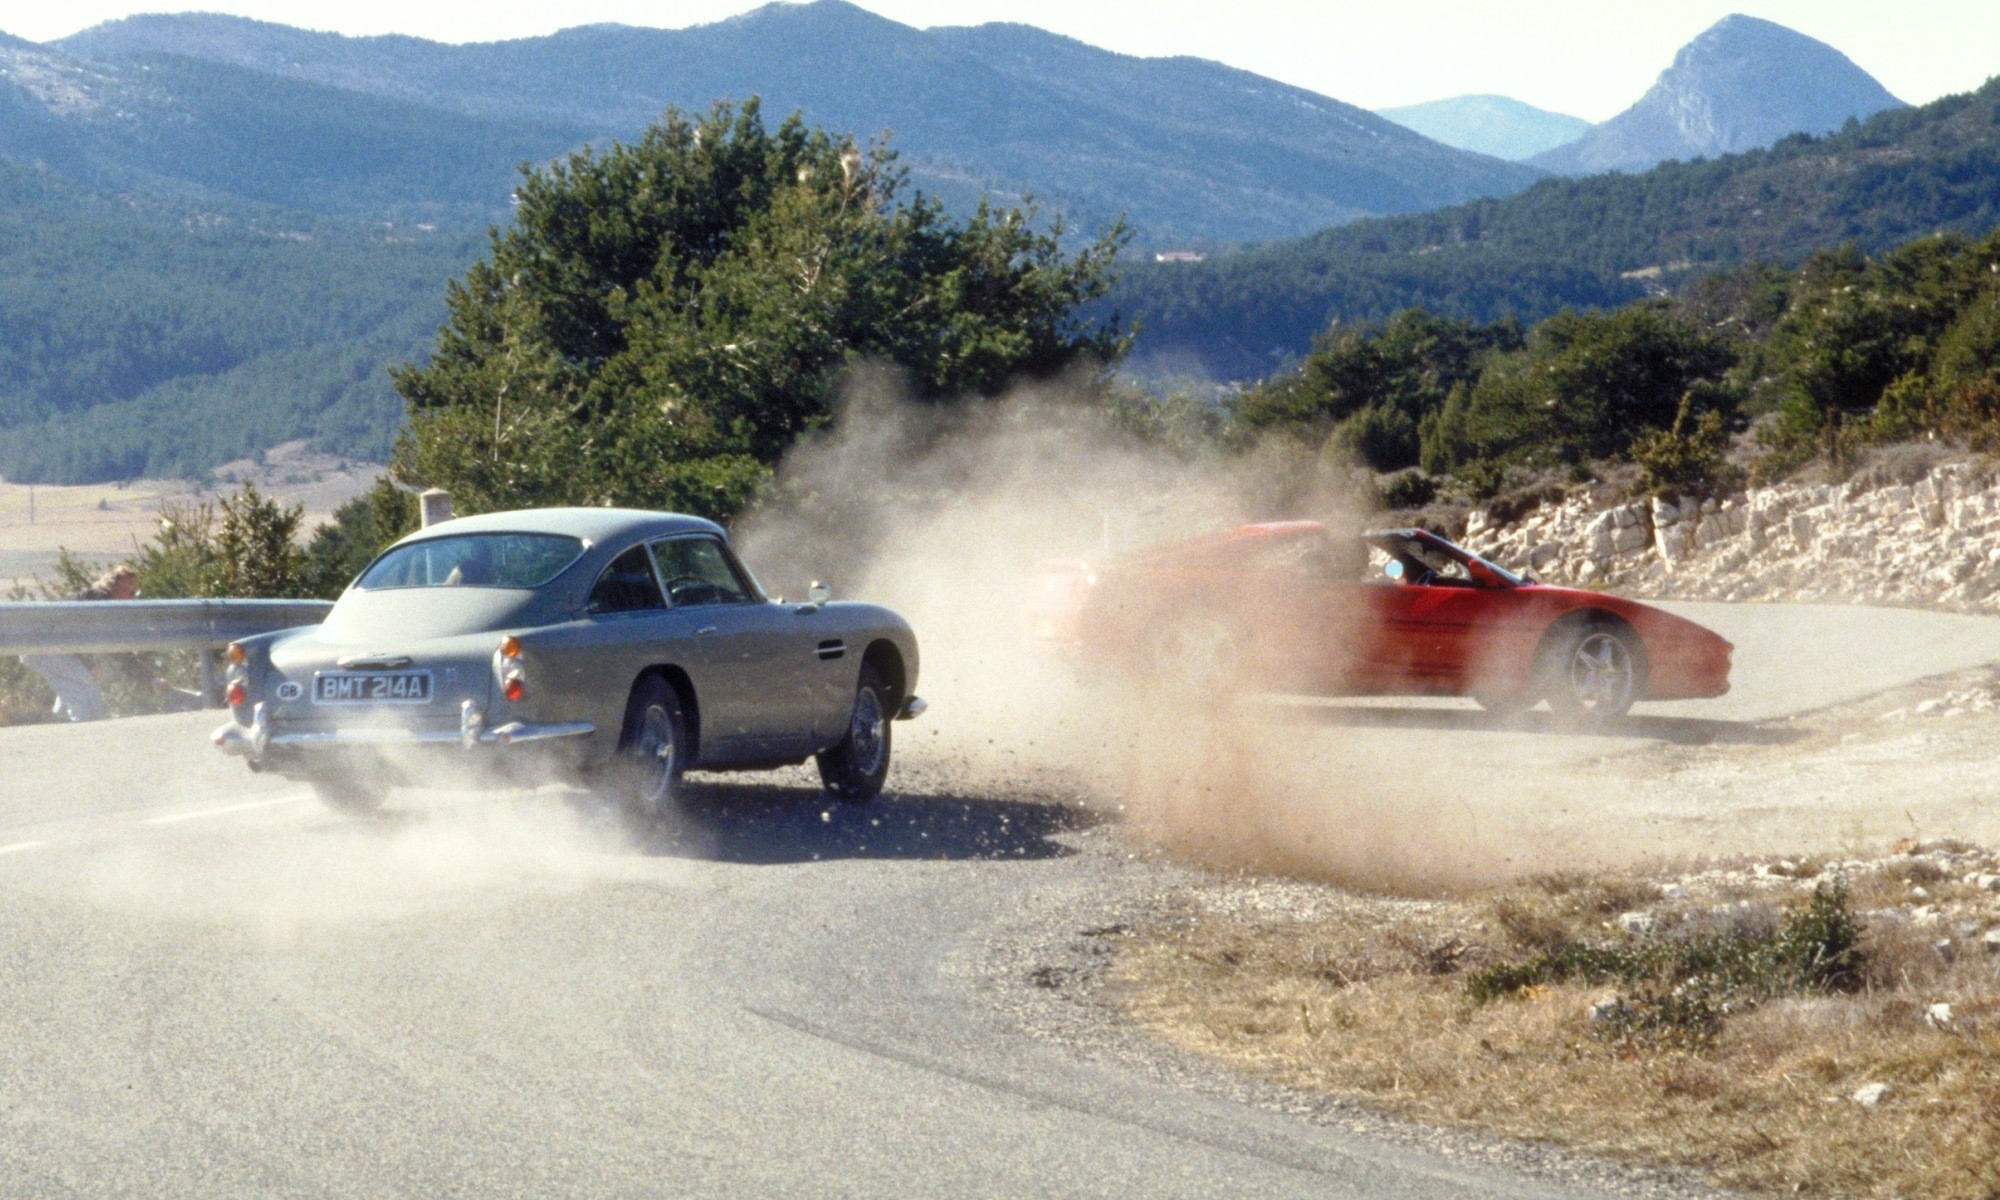 The Aston Martin DB5 chasing a Ferrari F355